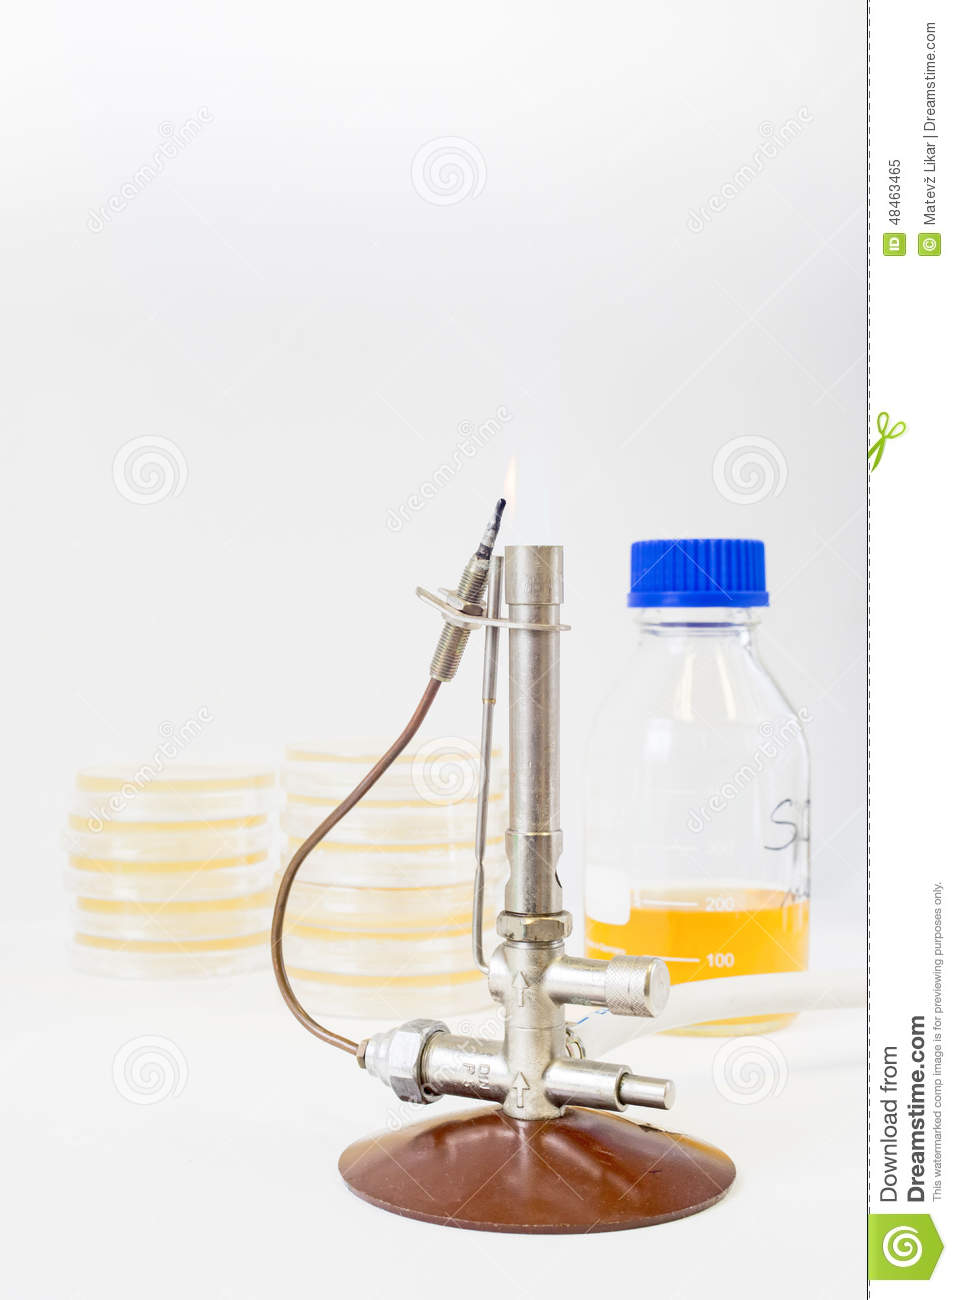 Bunsen burner with petri dishes and a flask